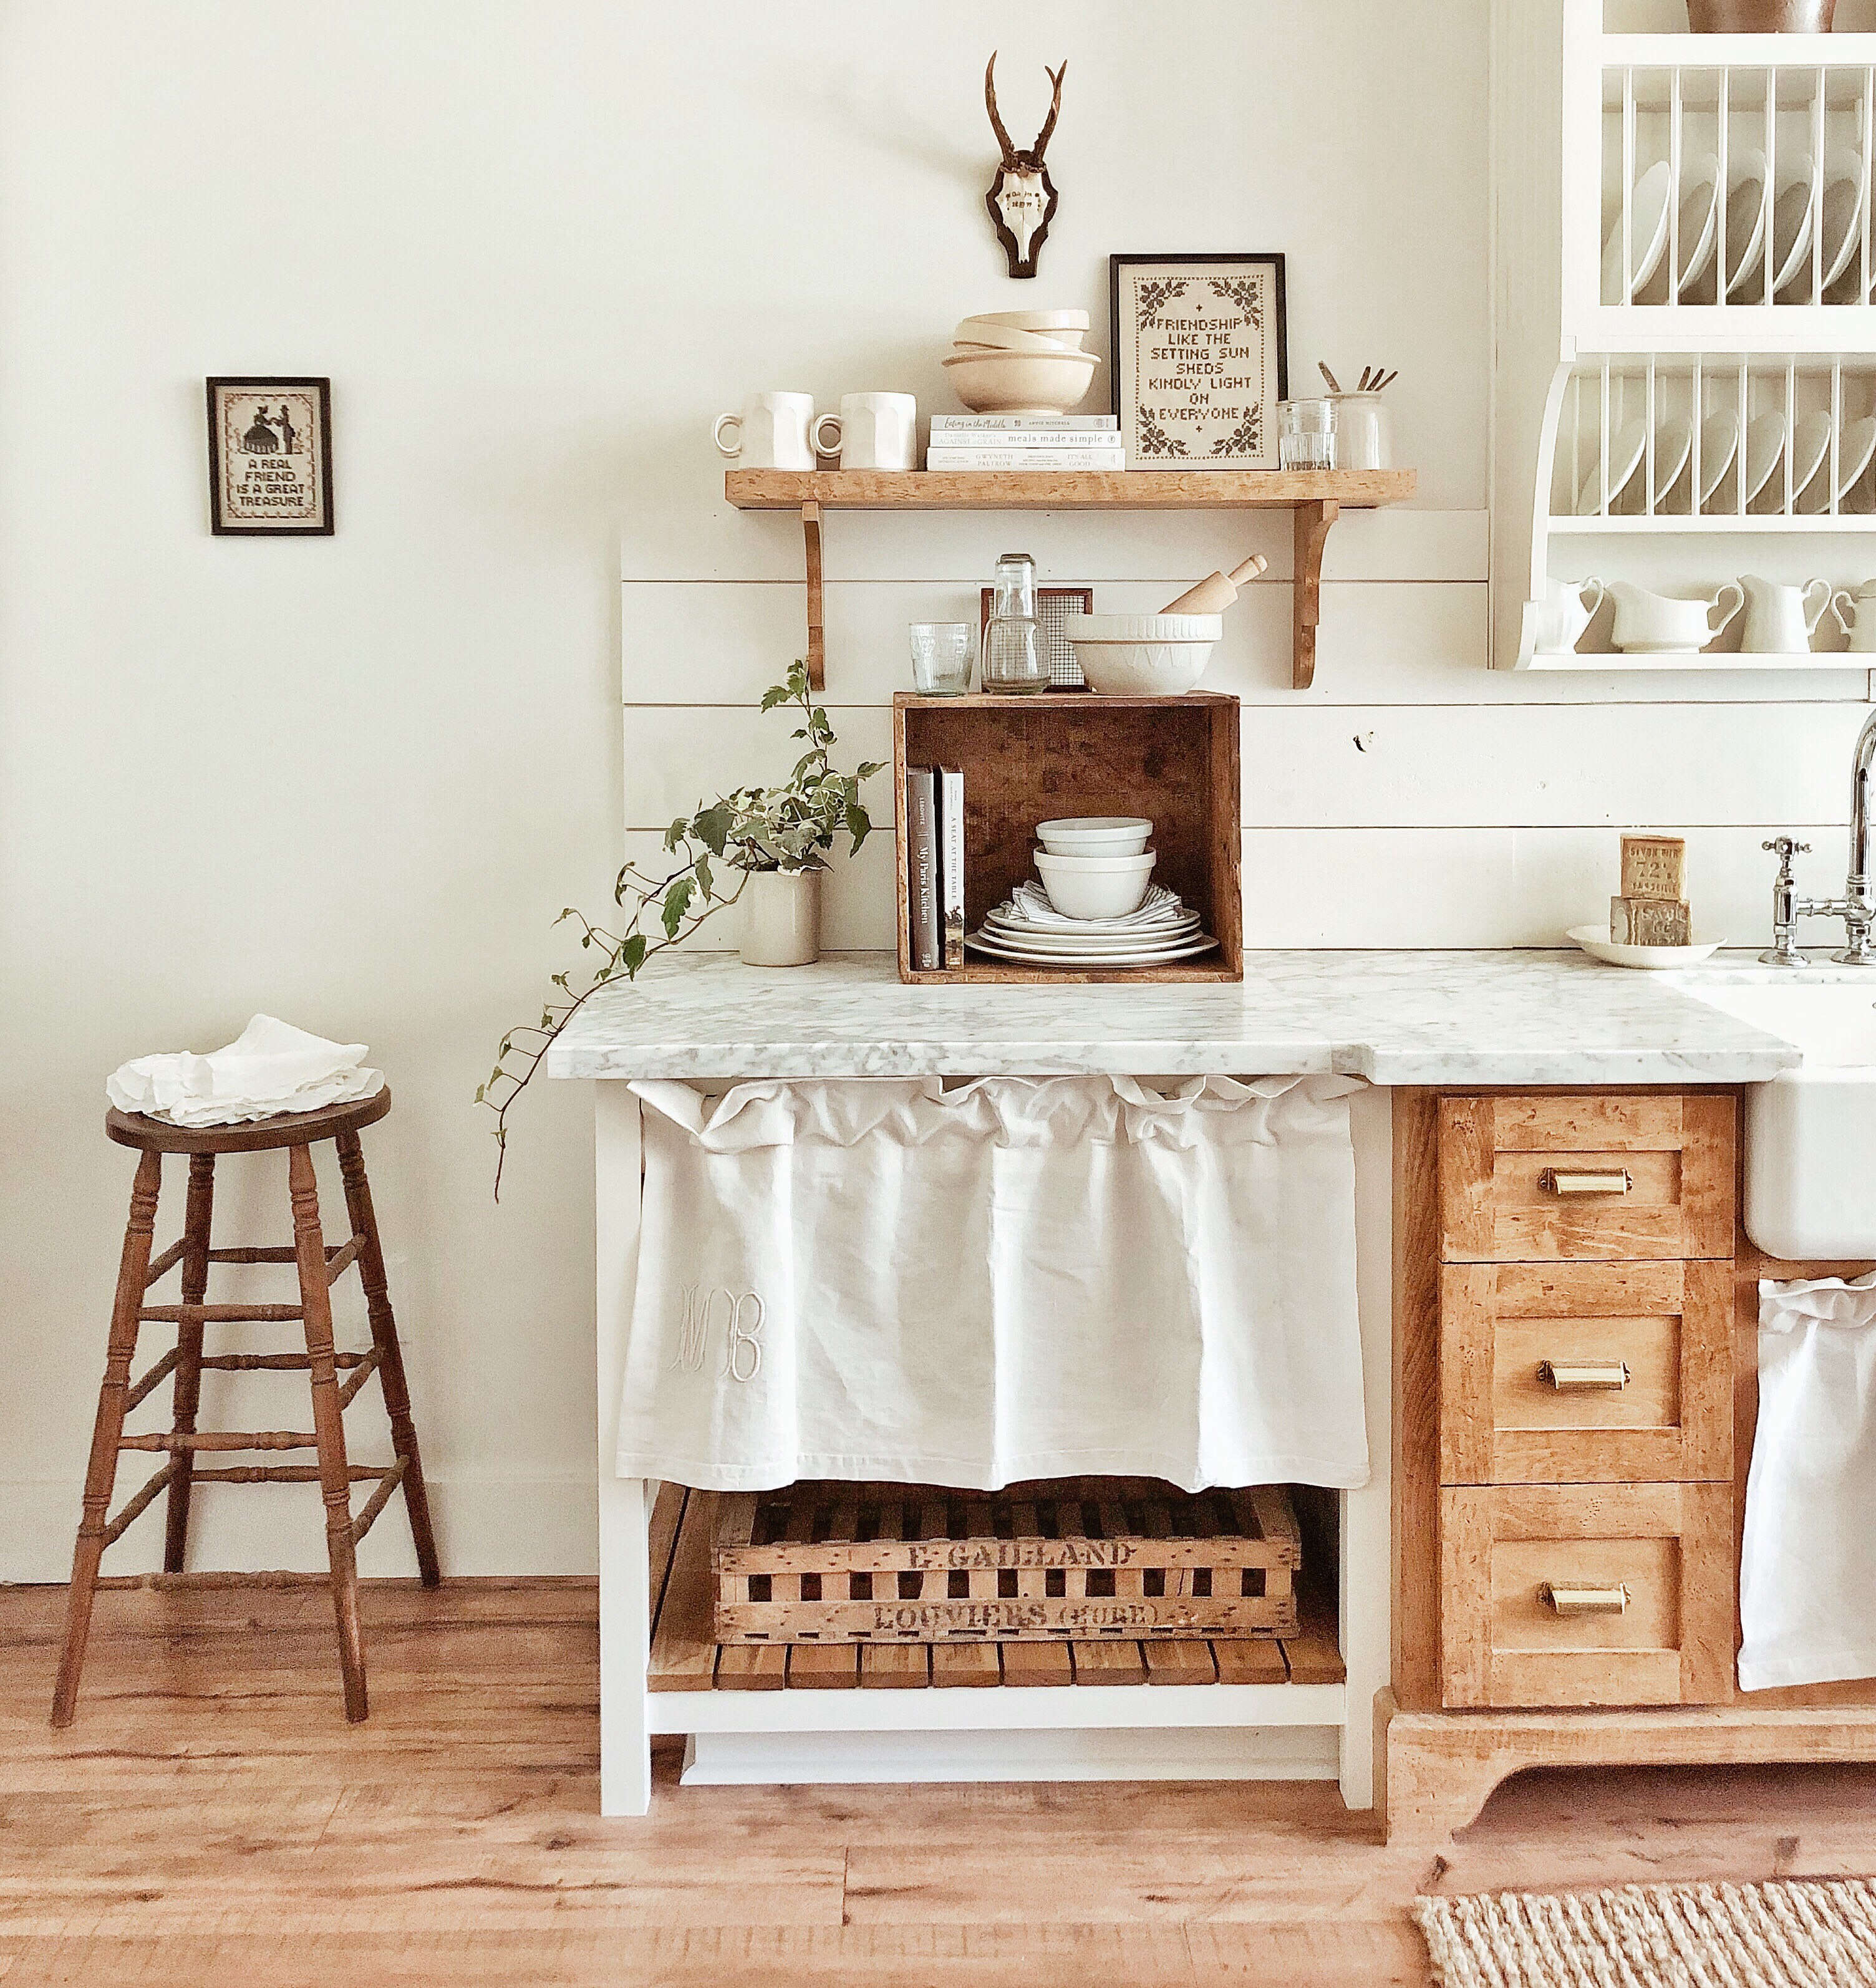 A Closer Look at Whitetail Farmhouse, This Year's Best Kitchen Organization Project